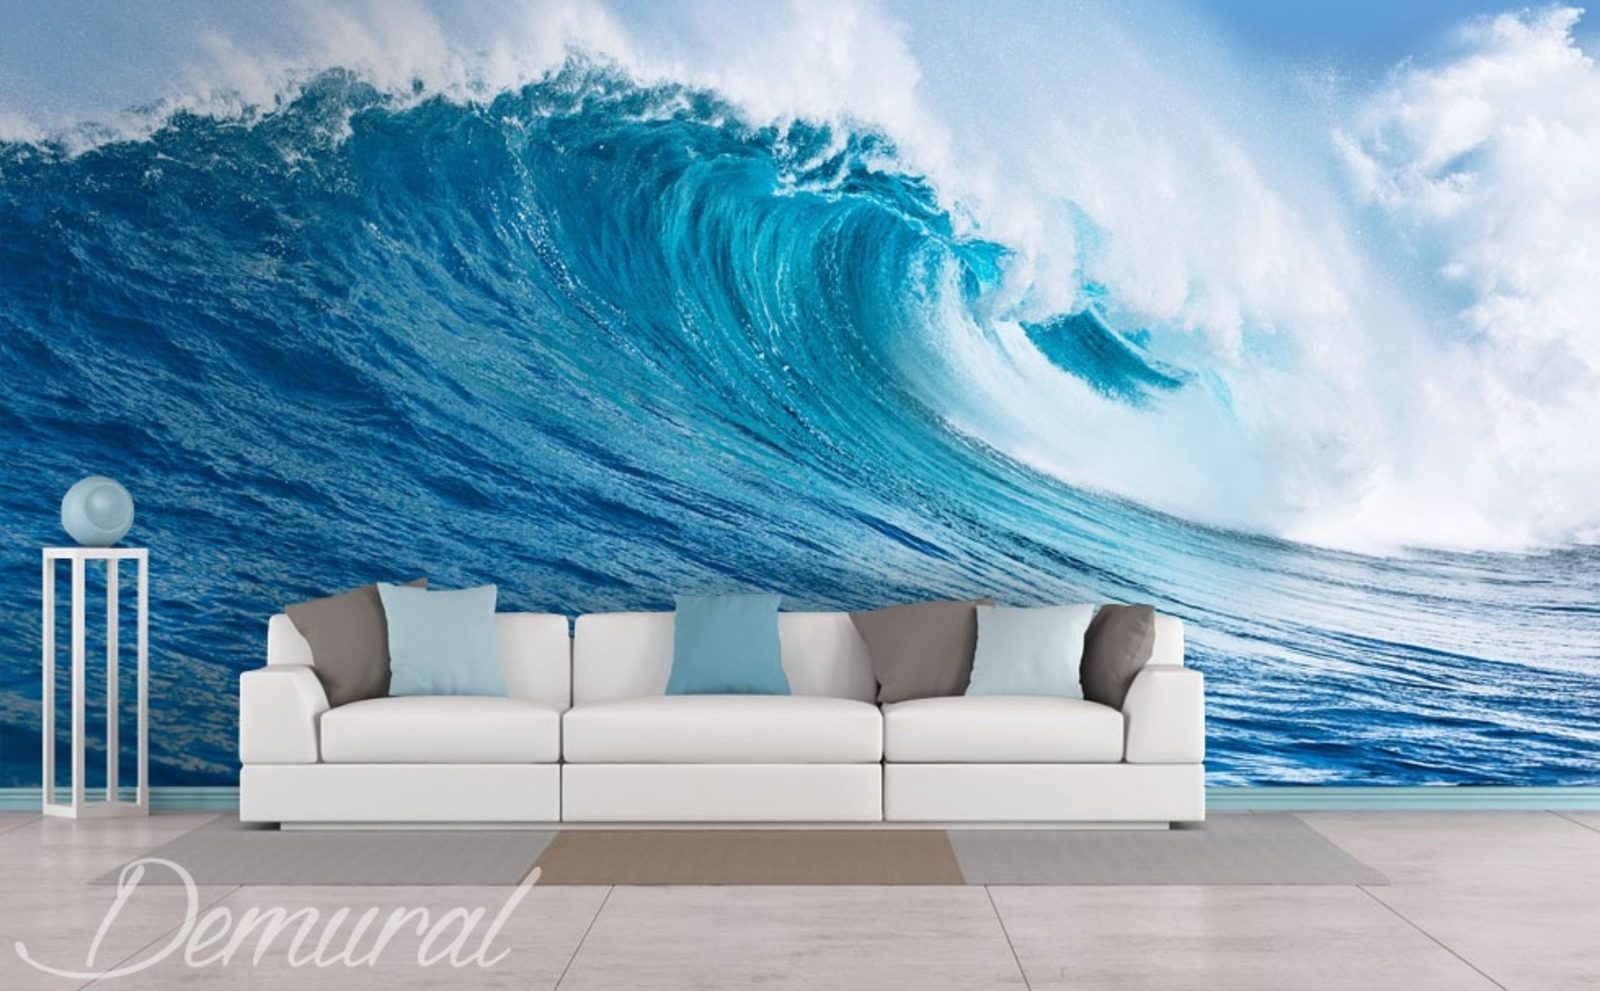 wall decal » graffiti wall decals - thousands pictures of wall, Hause deko